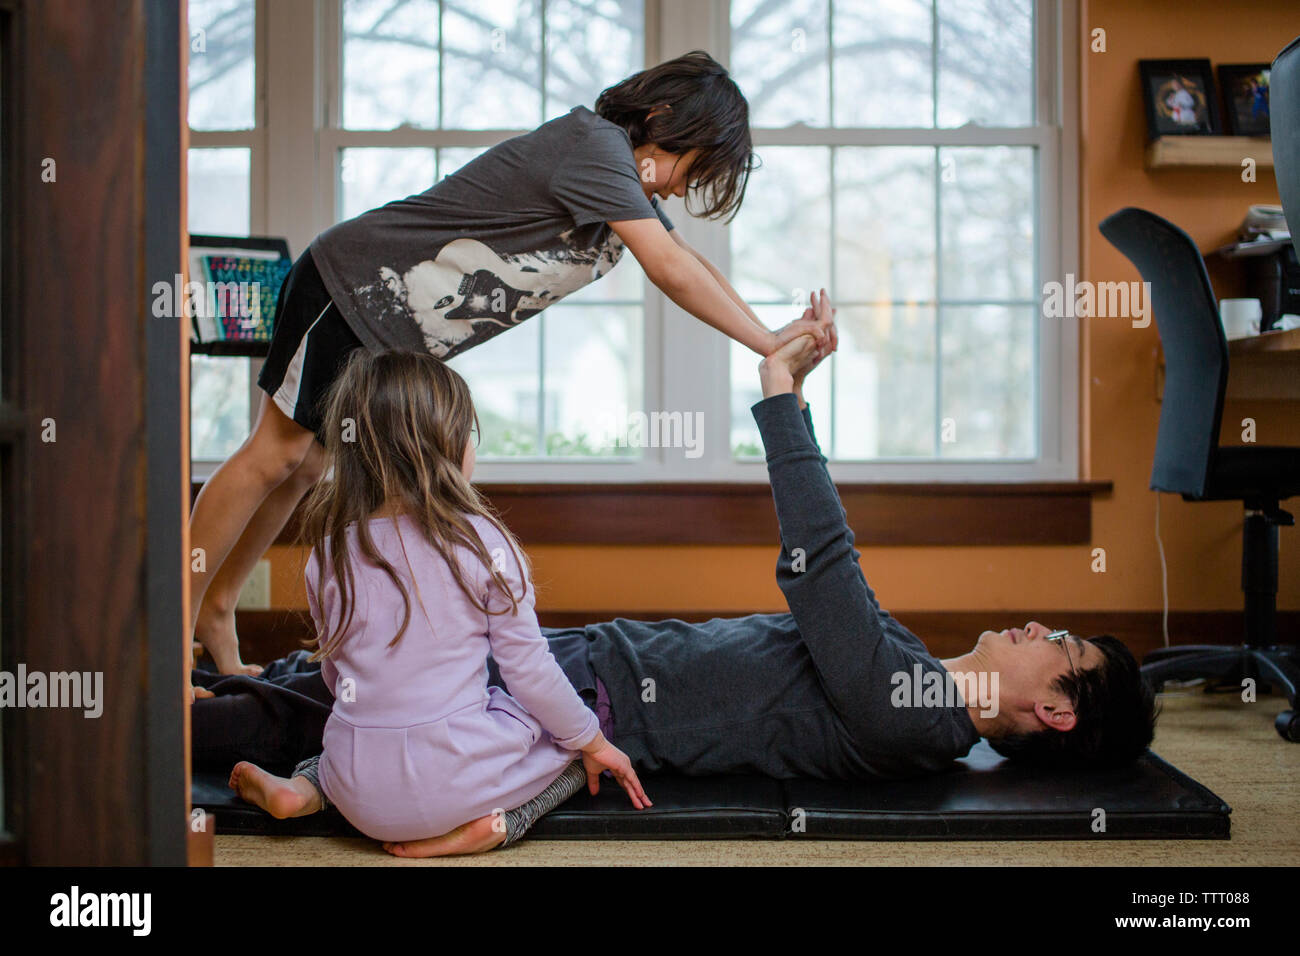 A father does exercise with his two small children inside a home Stock Photo